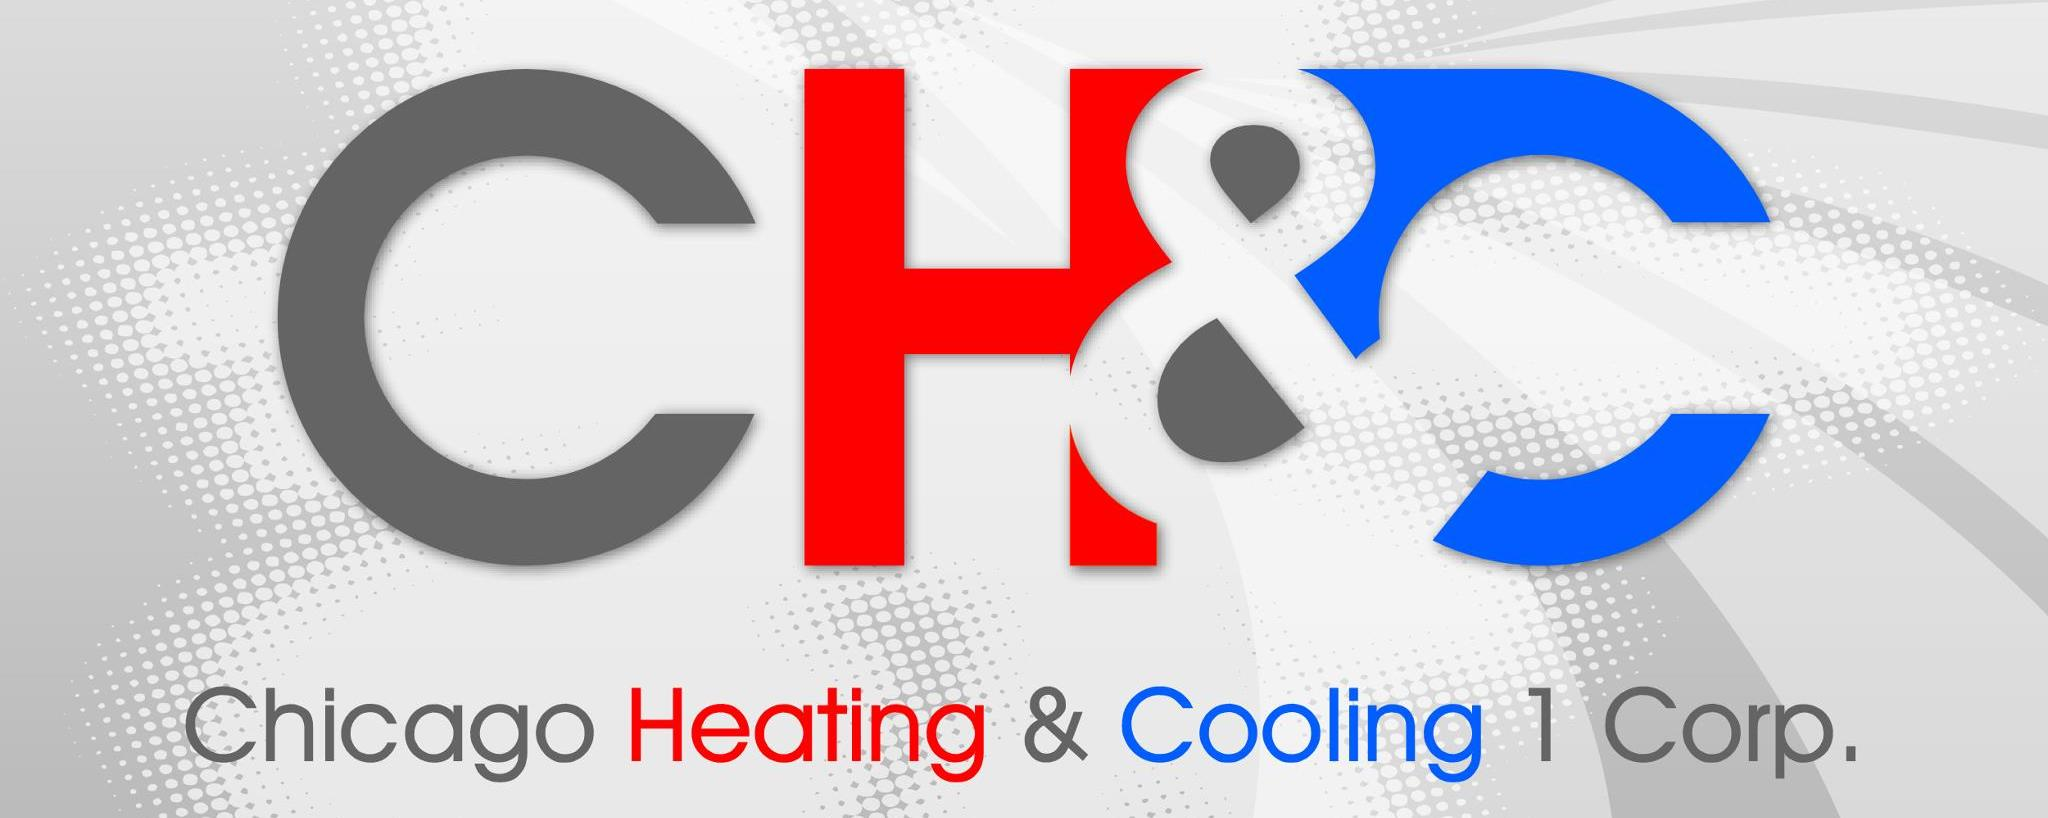 Chicago Heating & Cooling 1 Corp.